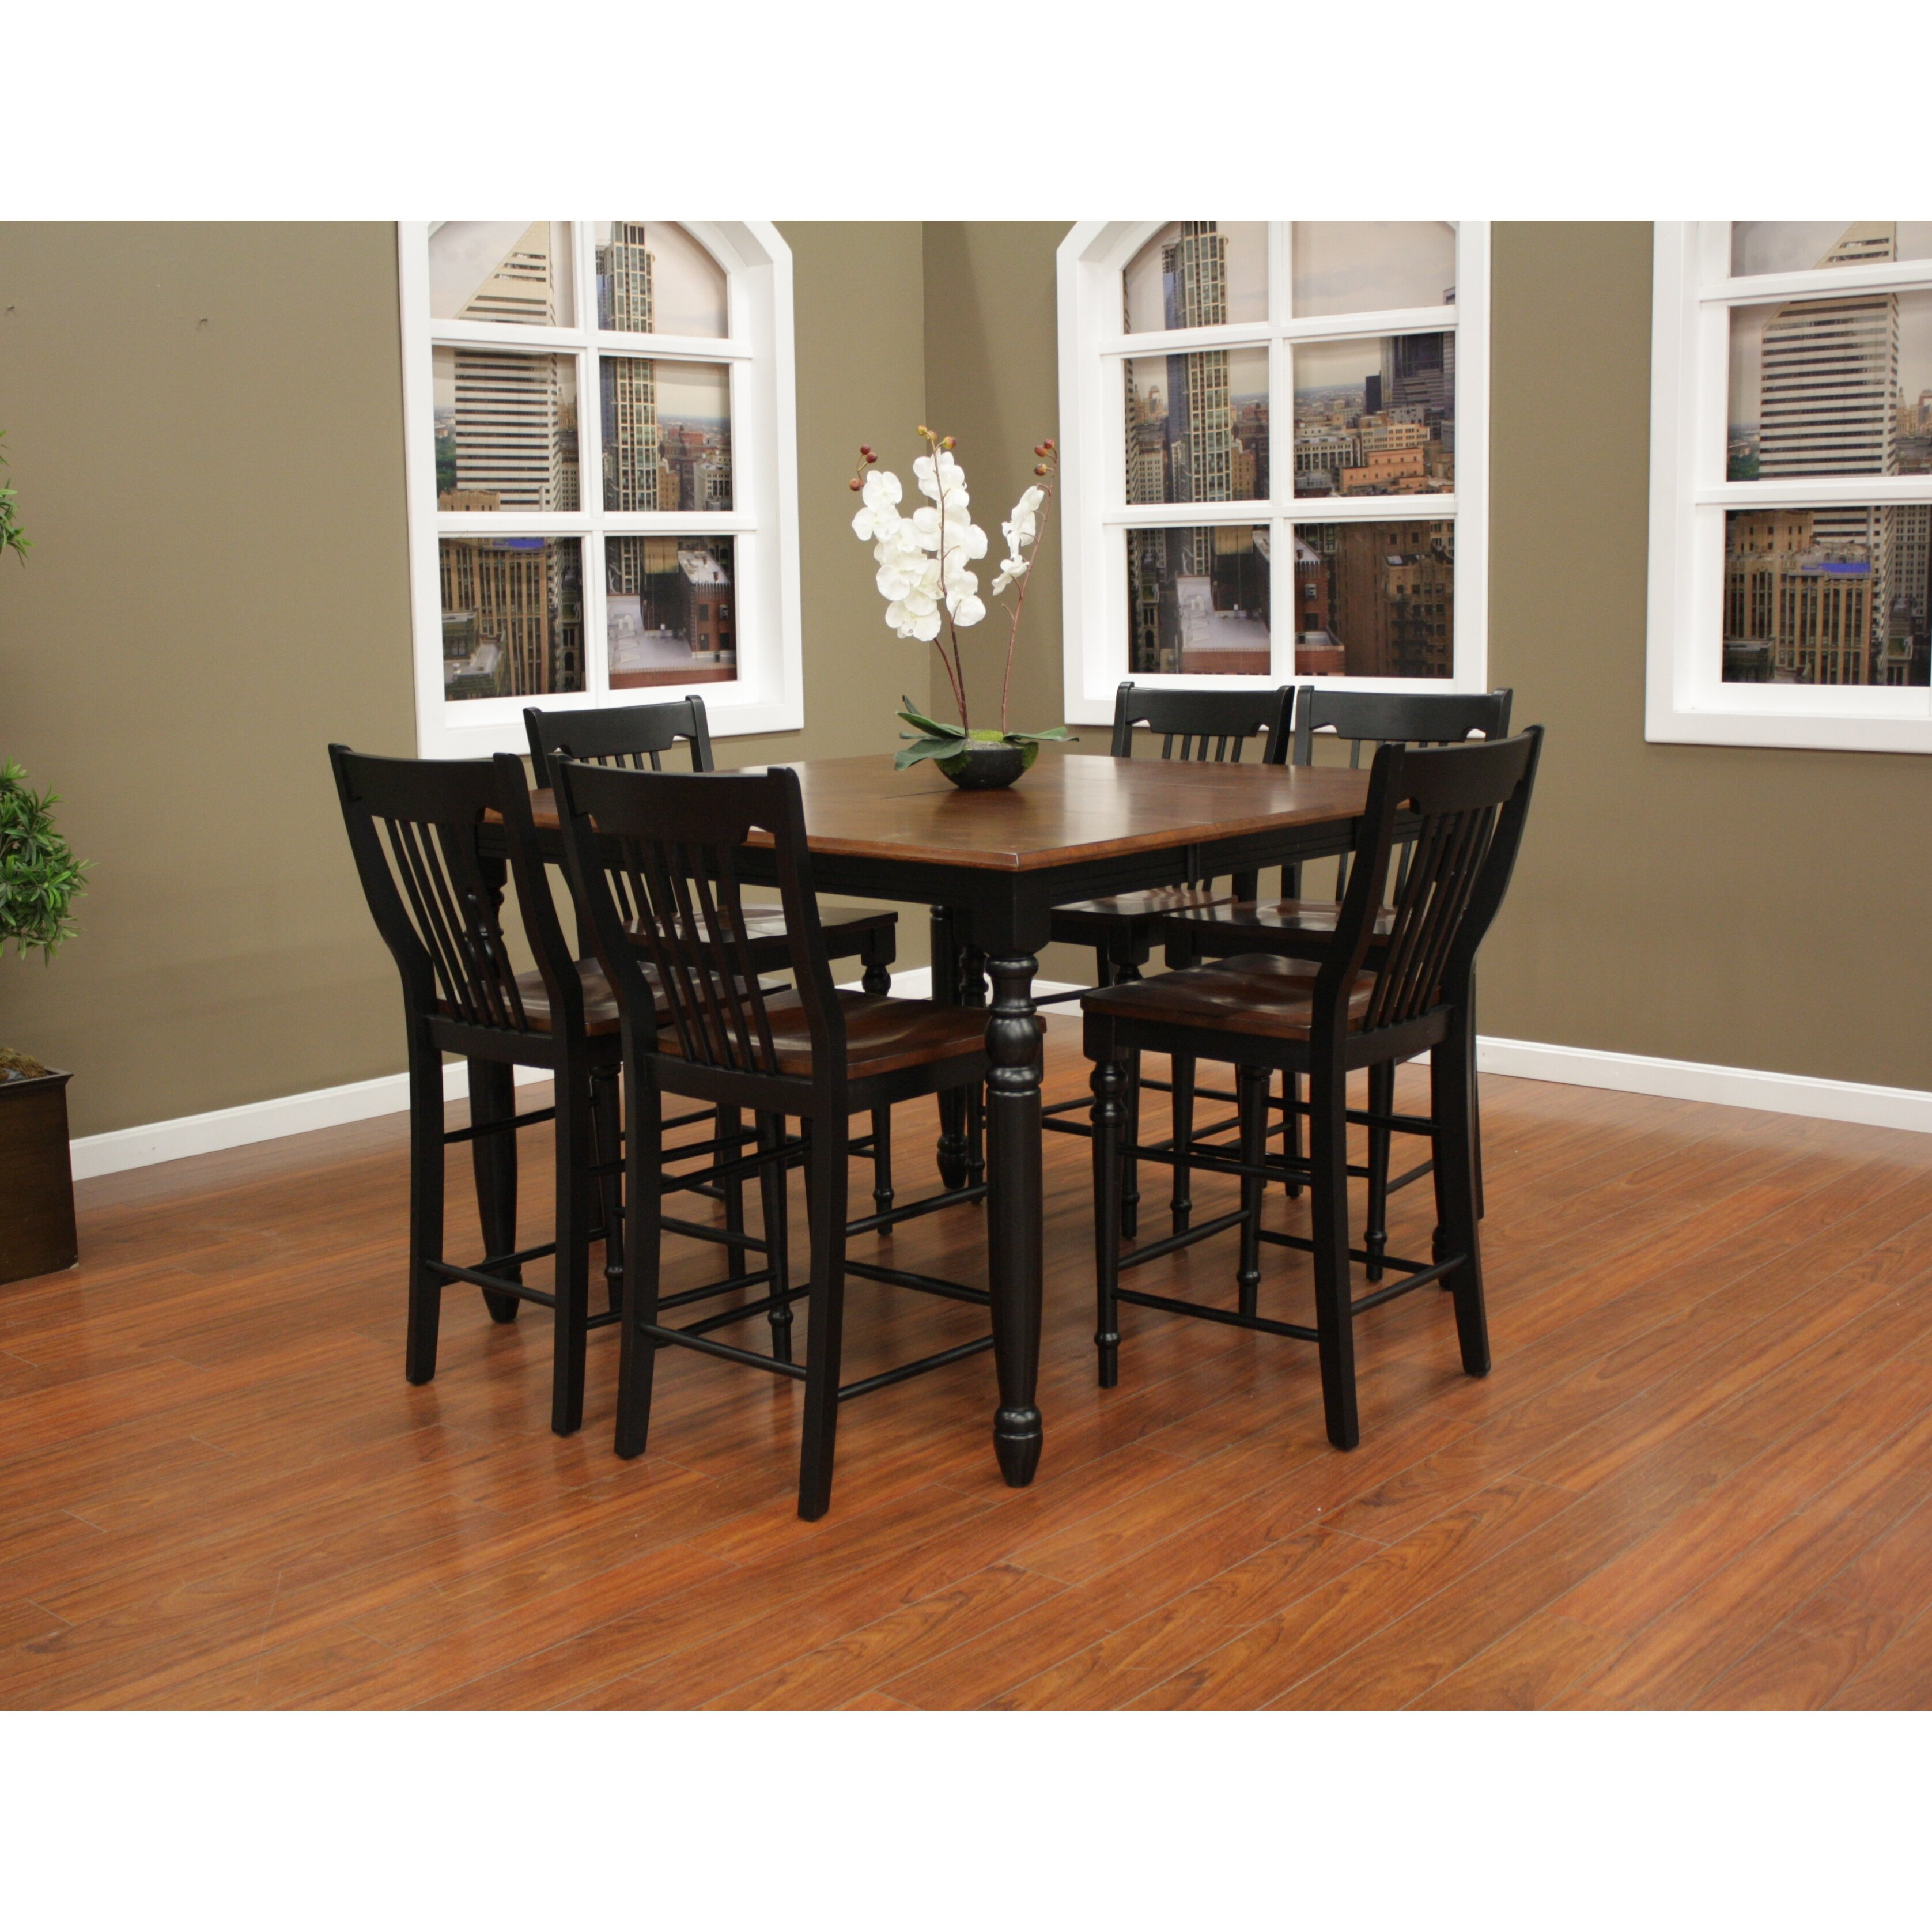 Grove deer lodge 7 piece counter height dining set amp for 7 piece dining room set counter height